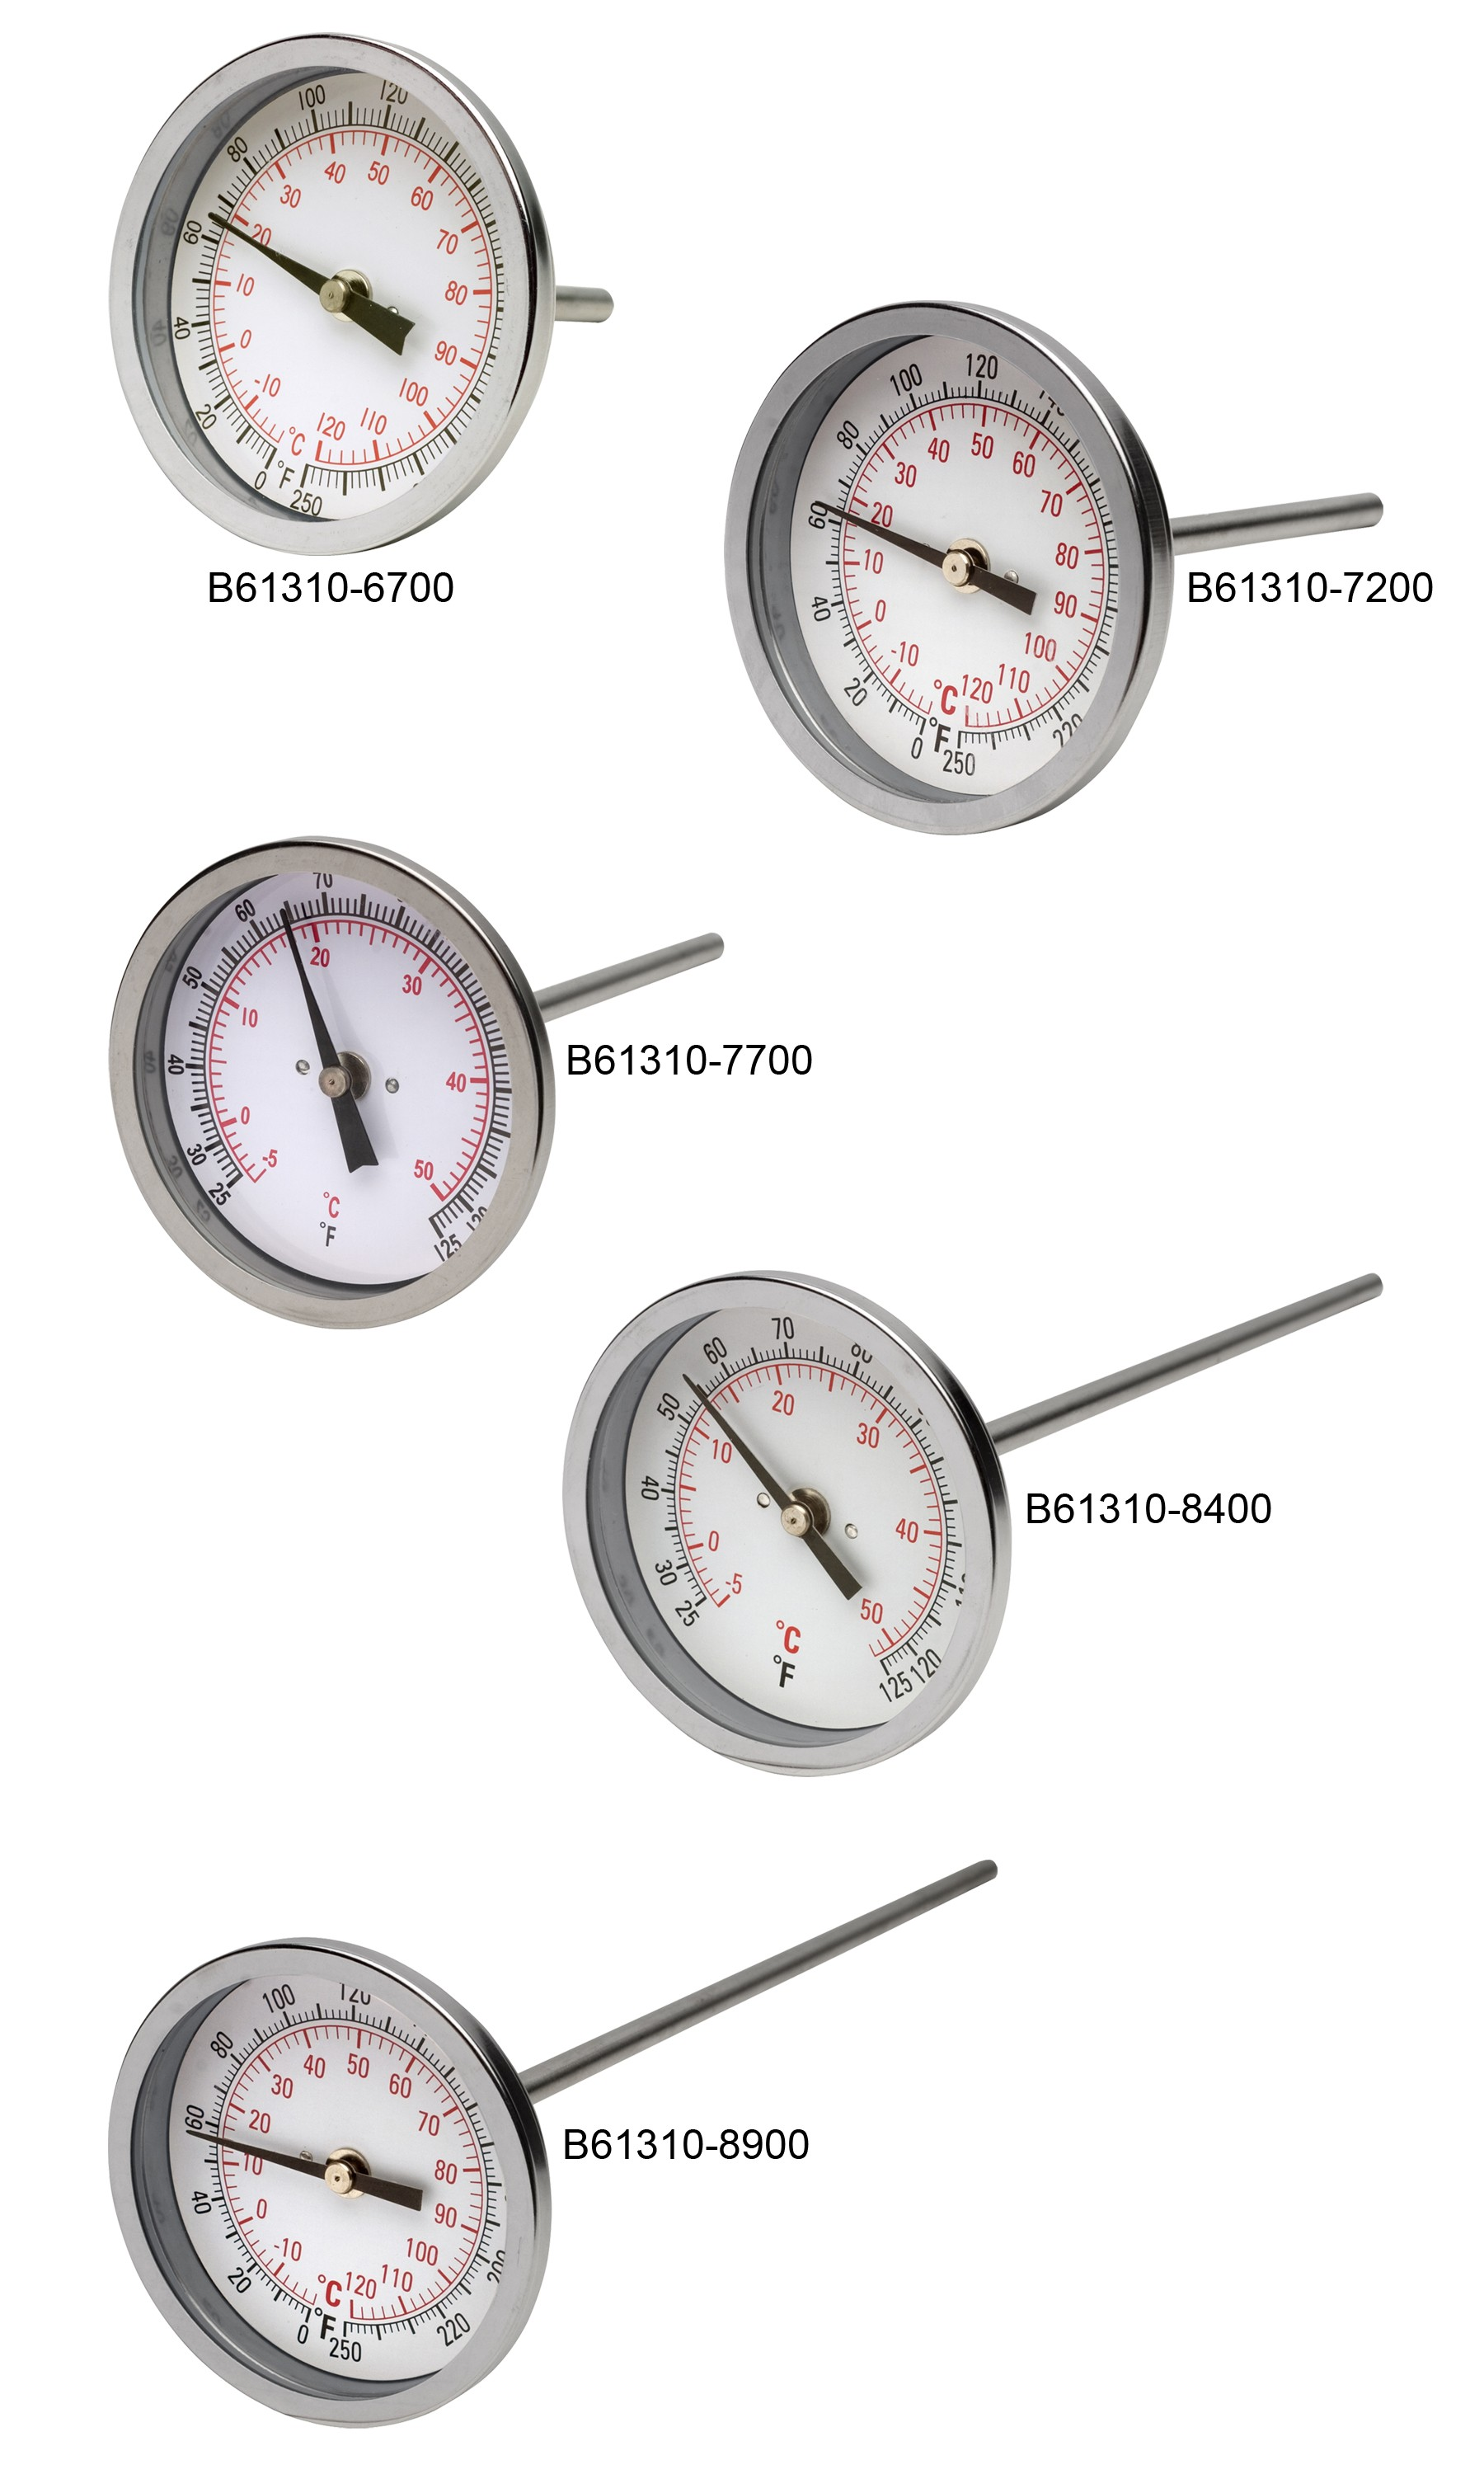 """H-B DURAC Bi-Metallic Dial Thermometer with 1/2"""" NPT Threaded Connection"""